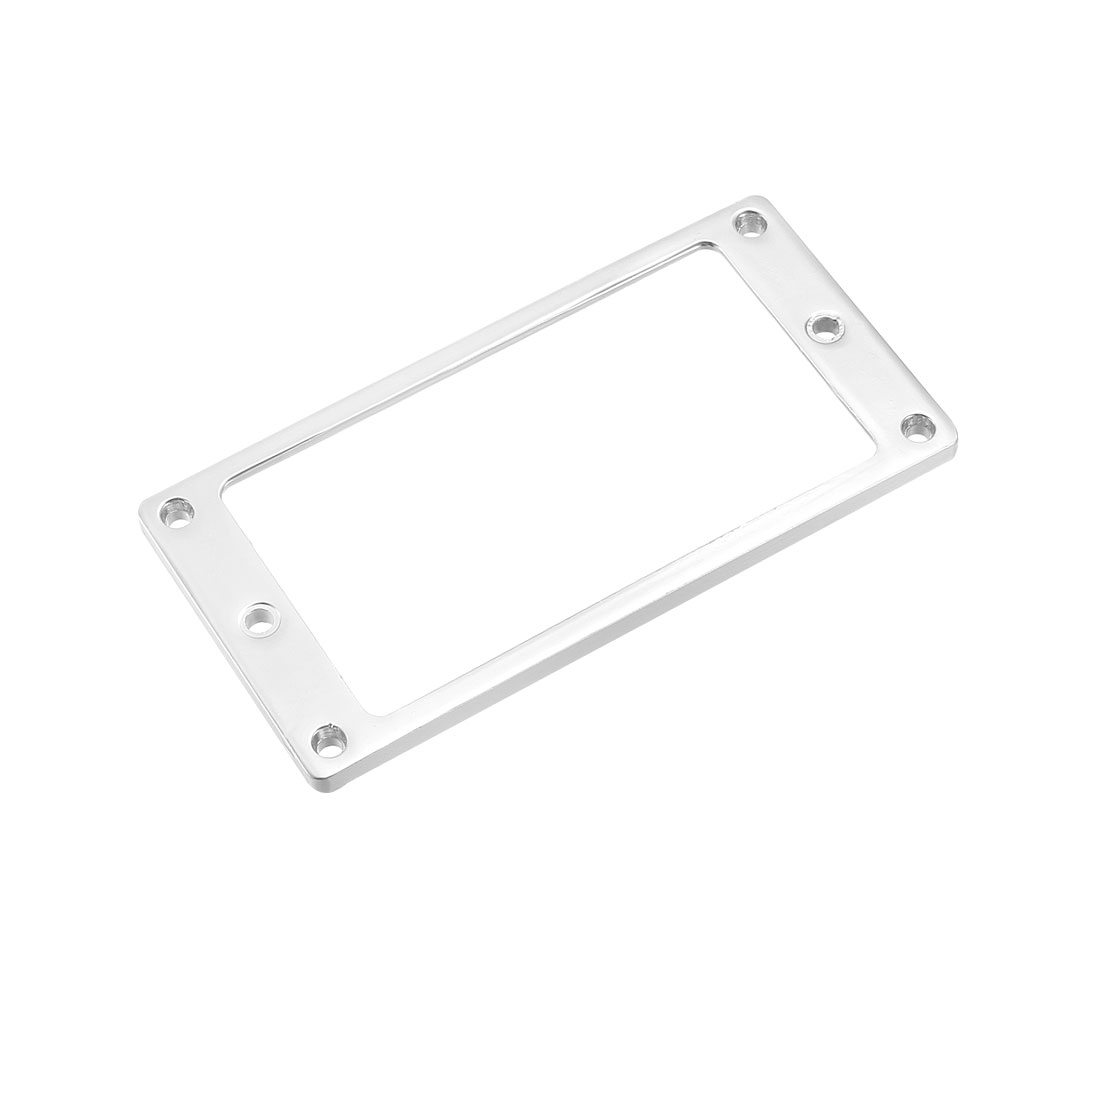 Humbucker Pickup Frame Mounting Rings Replacement for Electric Guitars Silver